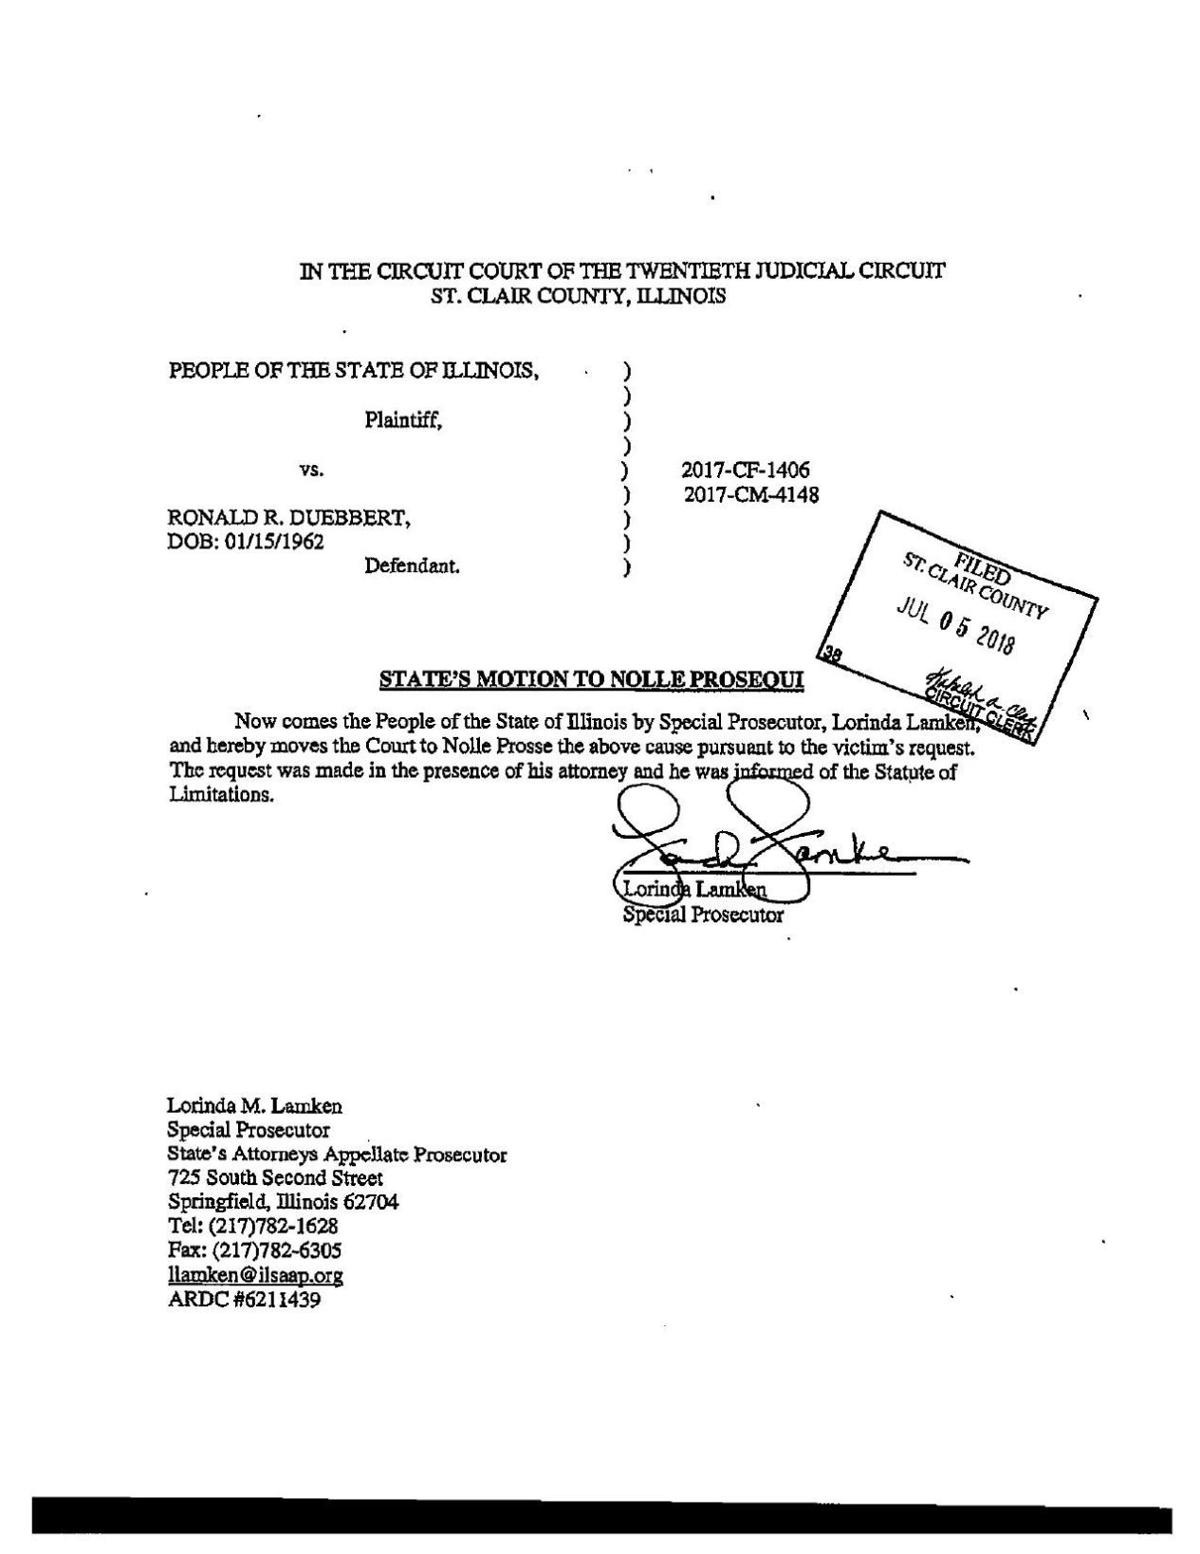 Dismissal memo in sex cases against St. Clair County judge